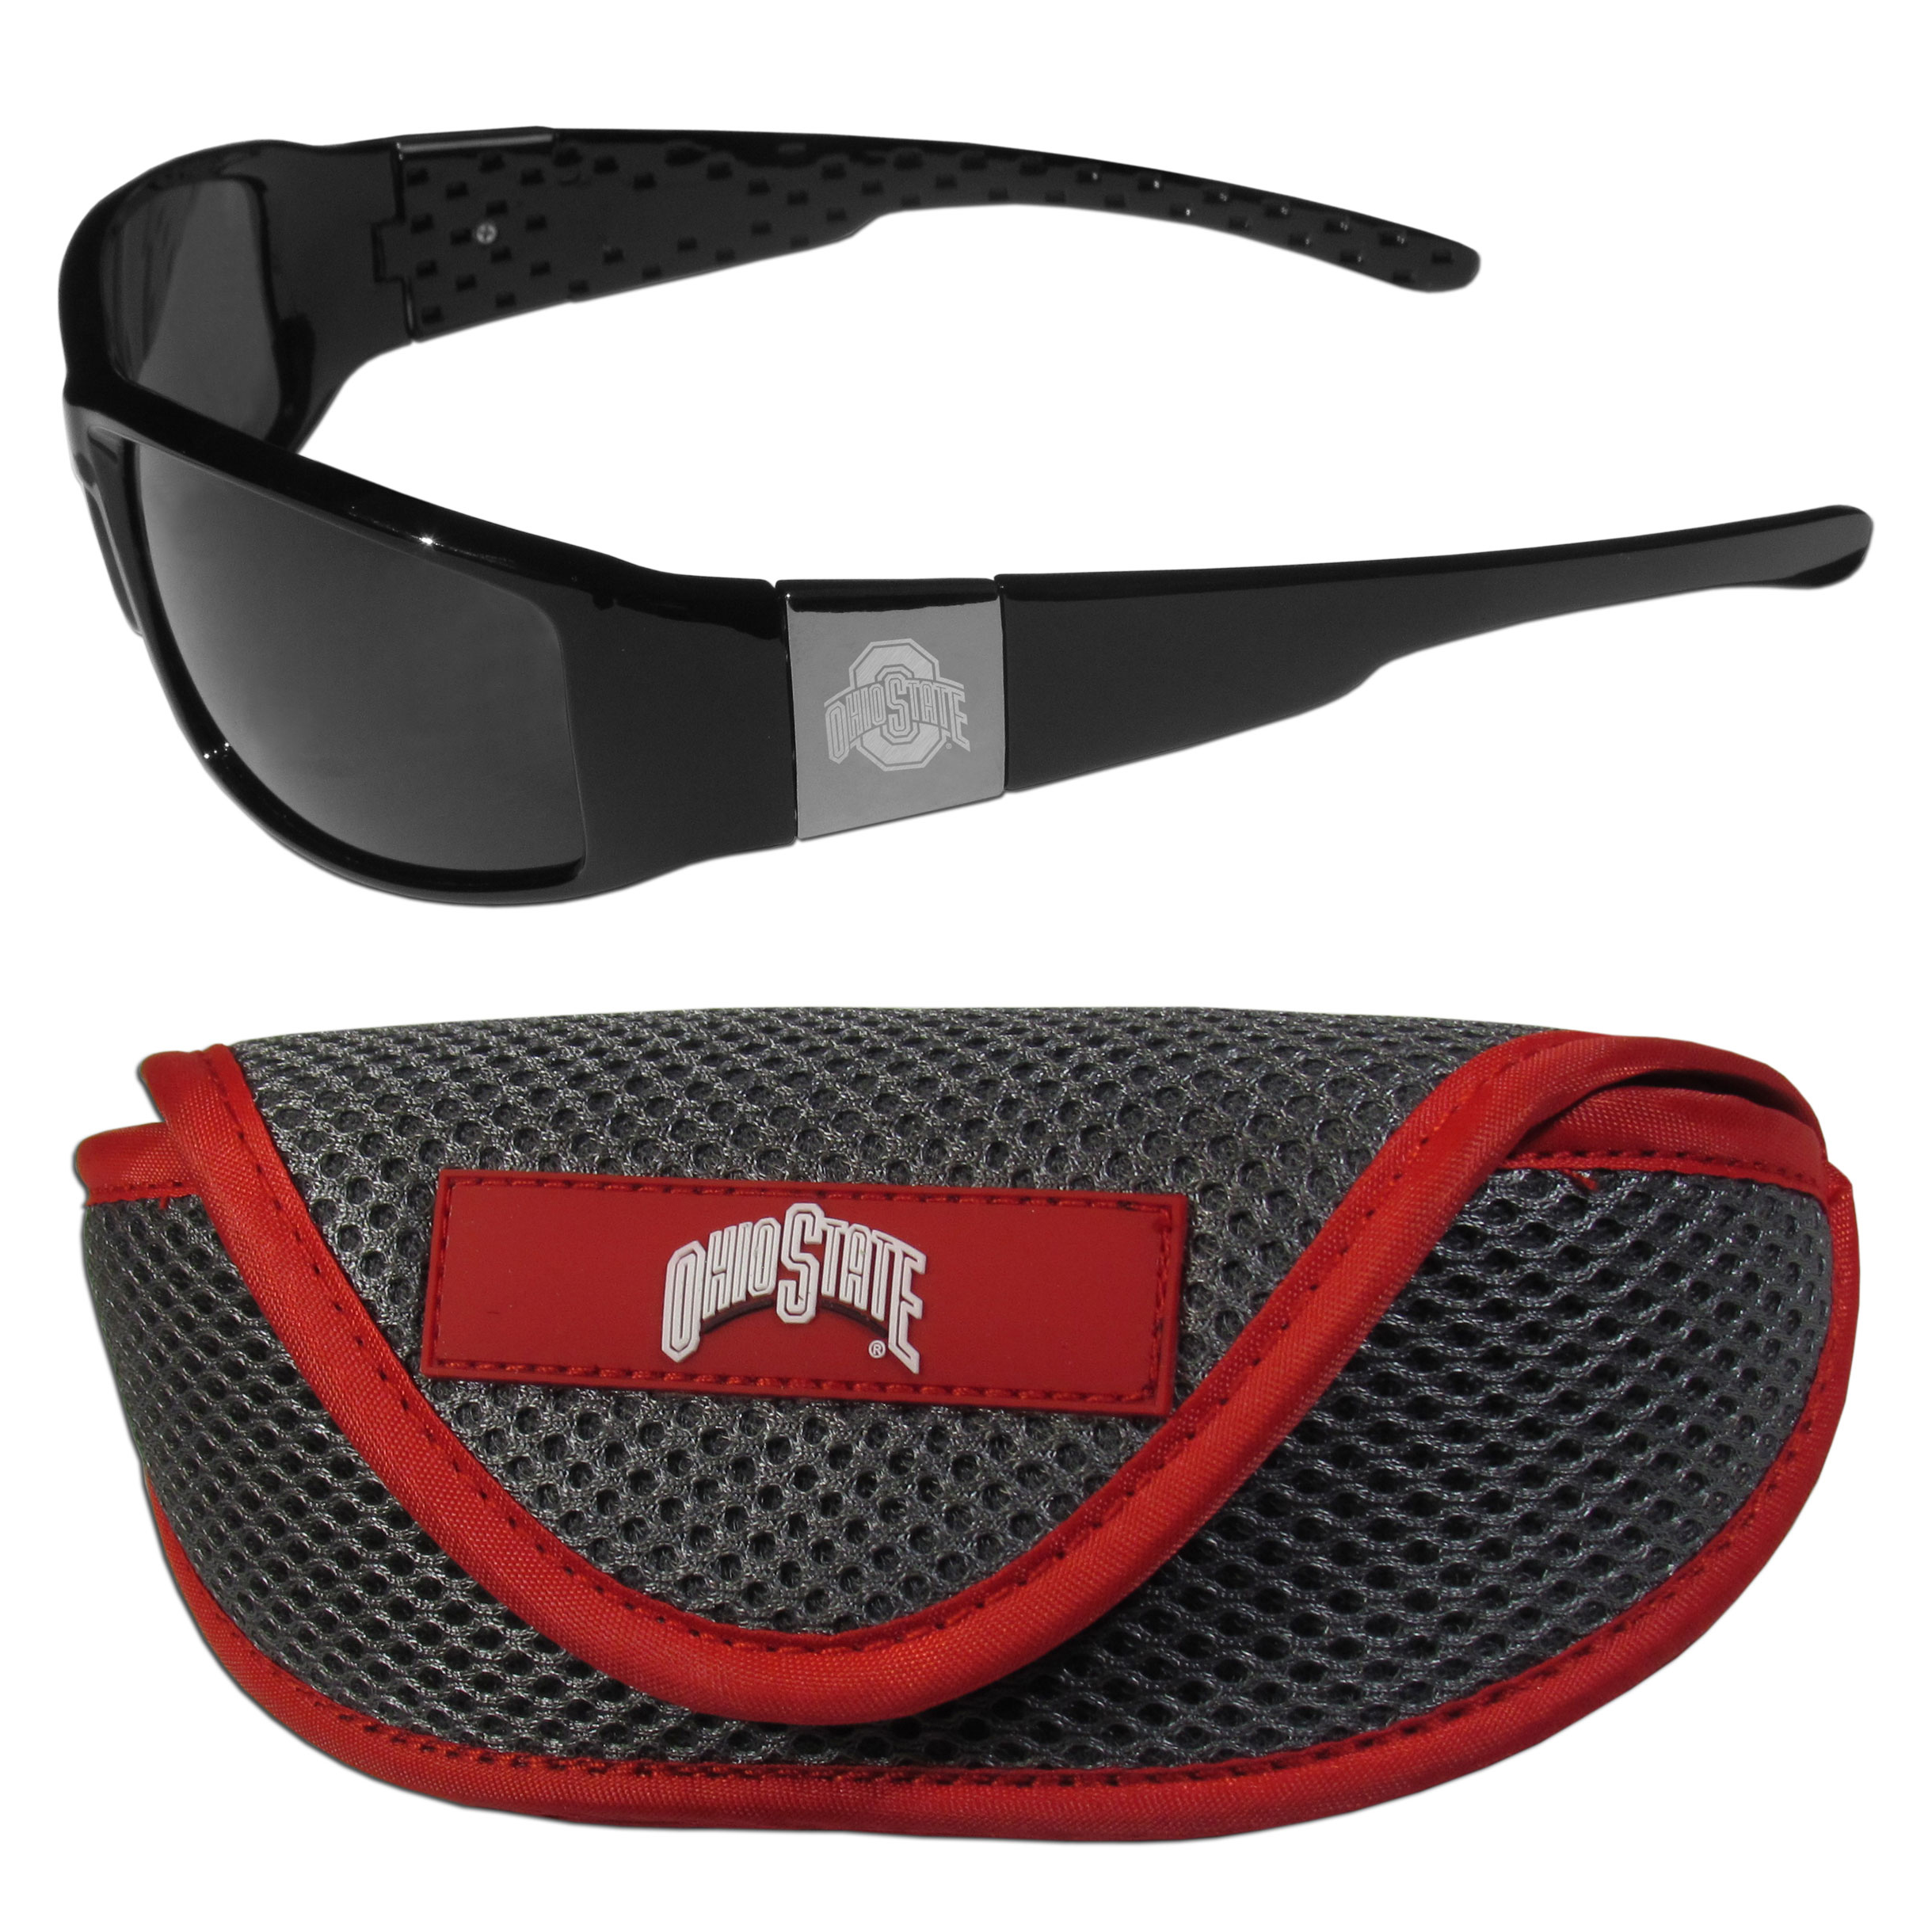 Ohio St. Buckeyes Chrome Wrap Sunglasses and Sport Carrying Case - These designer inspired frames have a sleek look in all black with high-polish chrome Ohio St. Buckeyes shields on each arm with an etched logo. The shades are perfect any outdoor activity like; golfing, driving, hiking, fishing or cheering on the team at a tailgating event or an at home game day BBQ with a lens rating of 100% UVA/UVB for maximum UV protection. The high-quality frames are as durable as they are fashionable and with their classic look they are perfect fan accessory that can be worn everyday for every occasion. The shades come with a zippered hard shell case to keep your sunglasses safe.